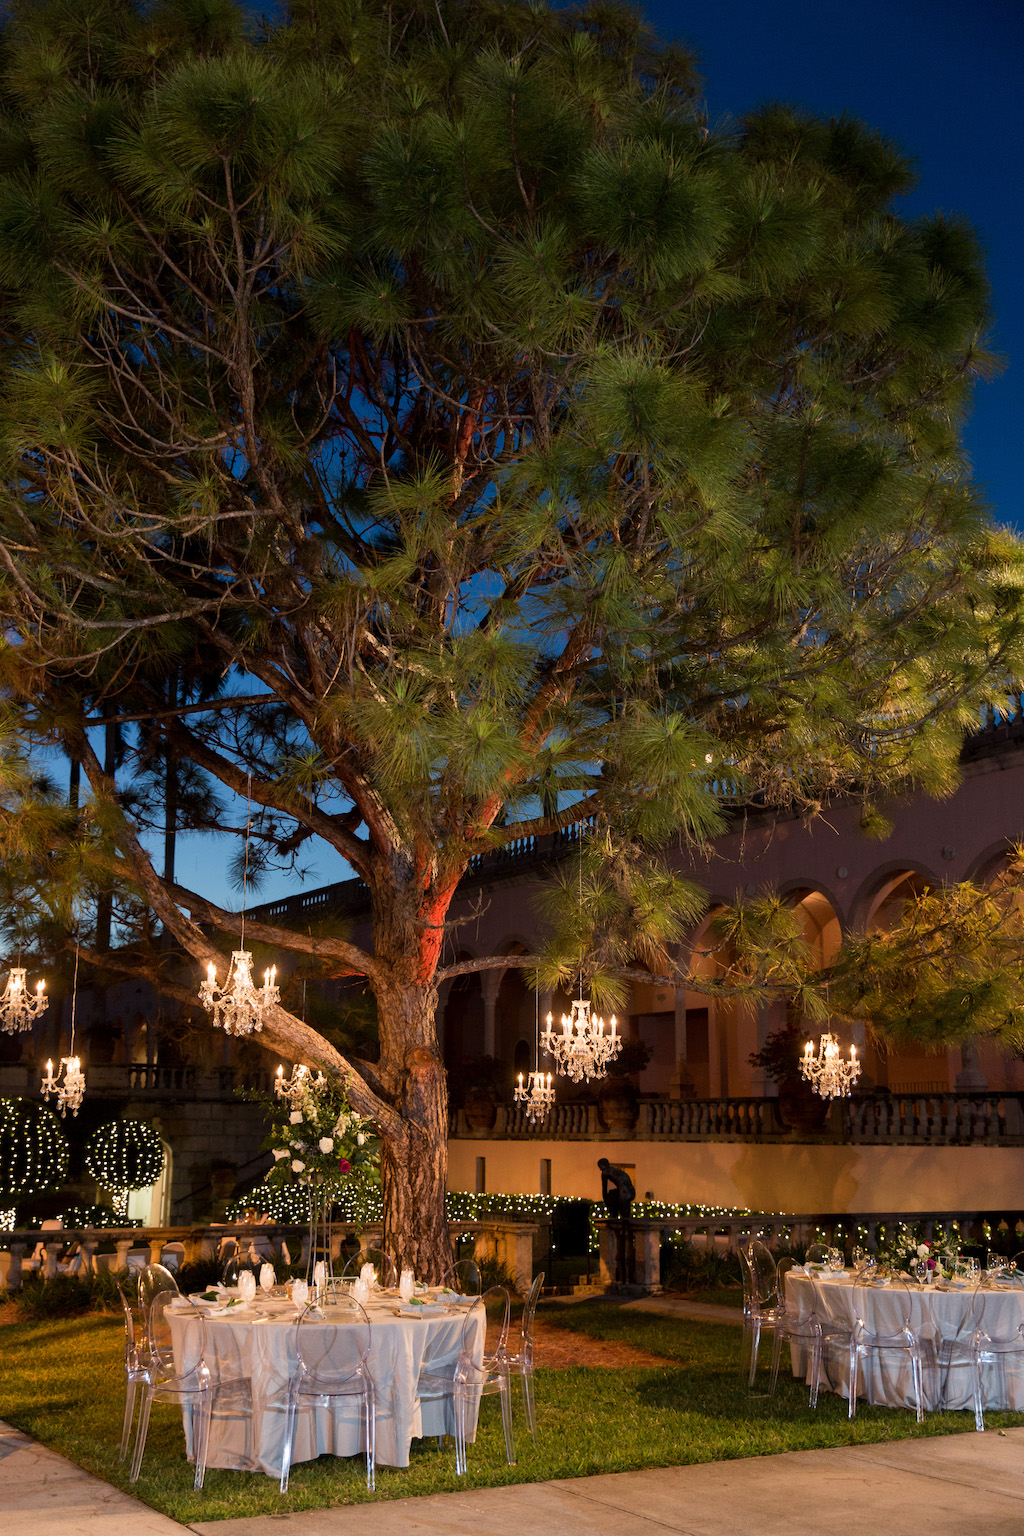 Nighttime Outdoor Garden Courtyard Wedding Reception Decor, Round Tables, Ghost Chairs, Crystal Chandeliers Hanging From Tree | Sarasota Wedding Venue Ringling Museum | Tampa Bay Wedding Planner NK Weddings